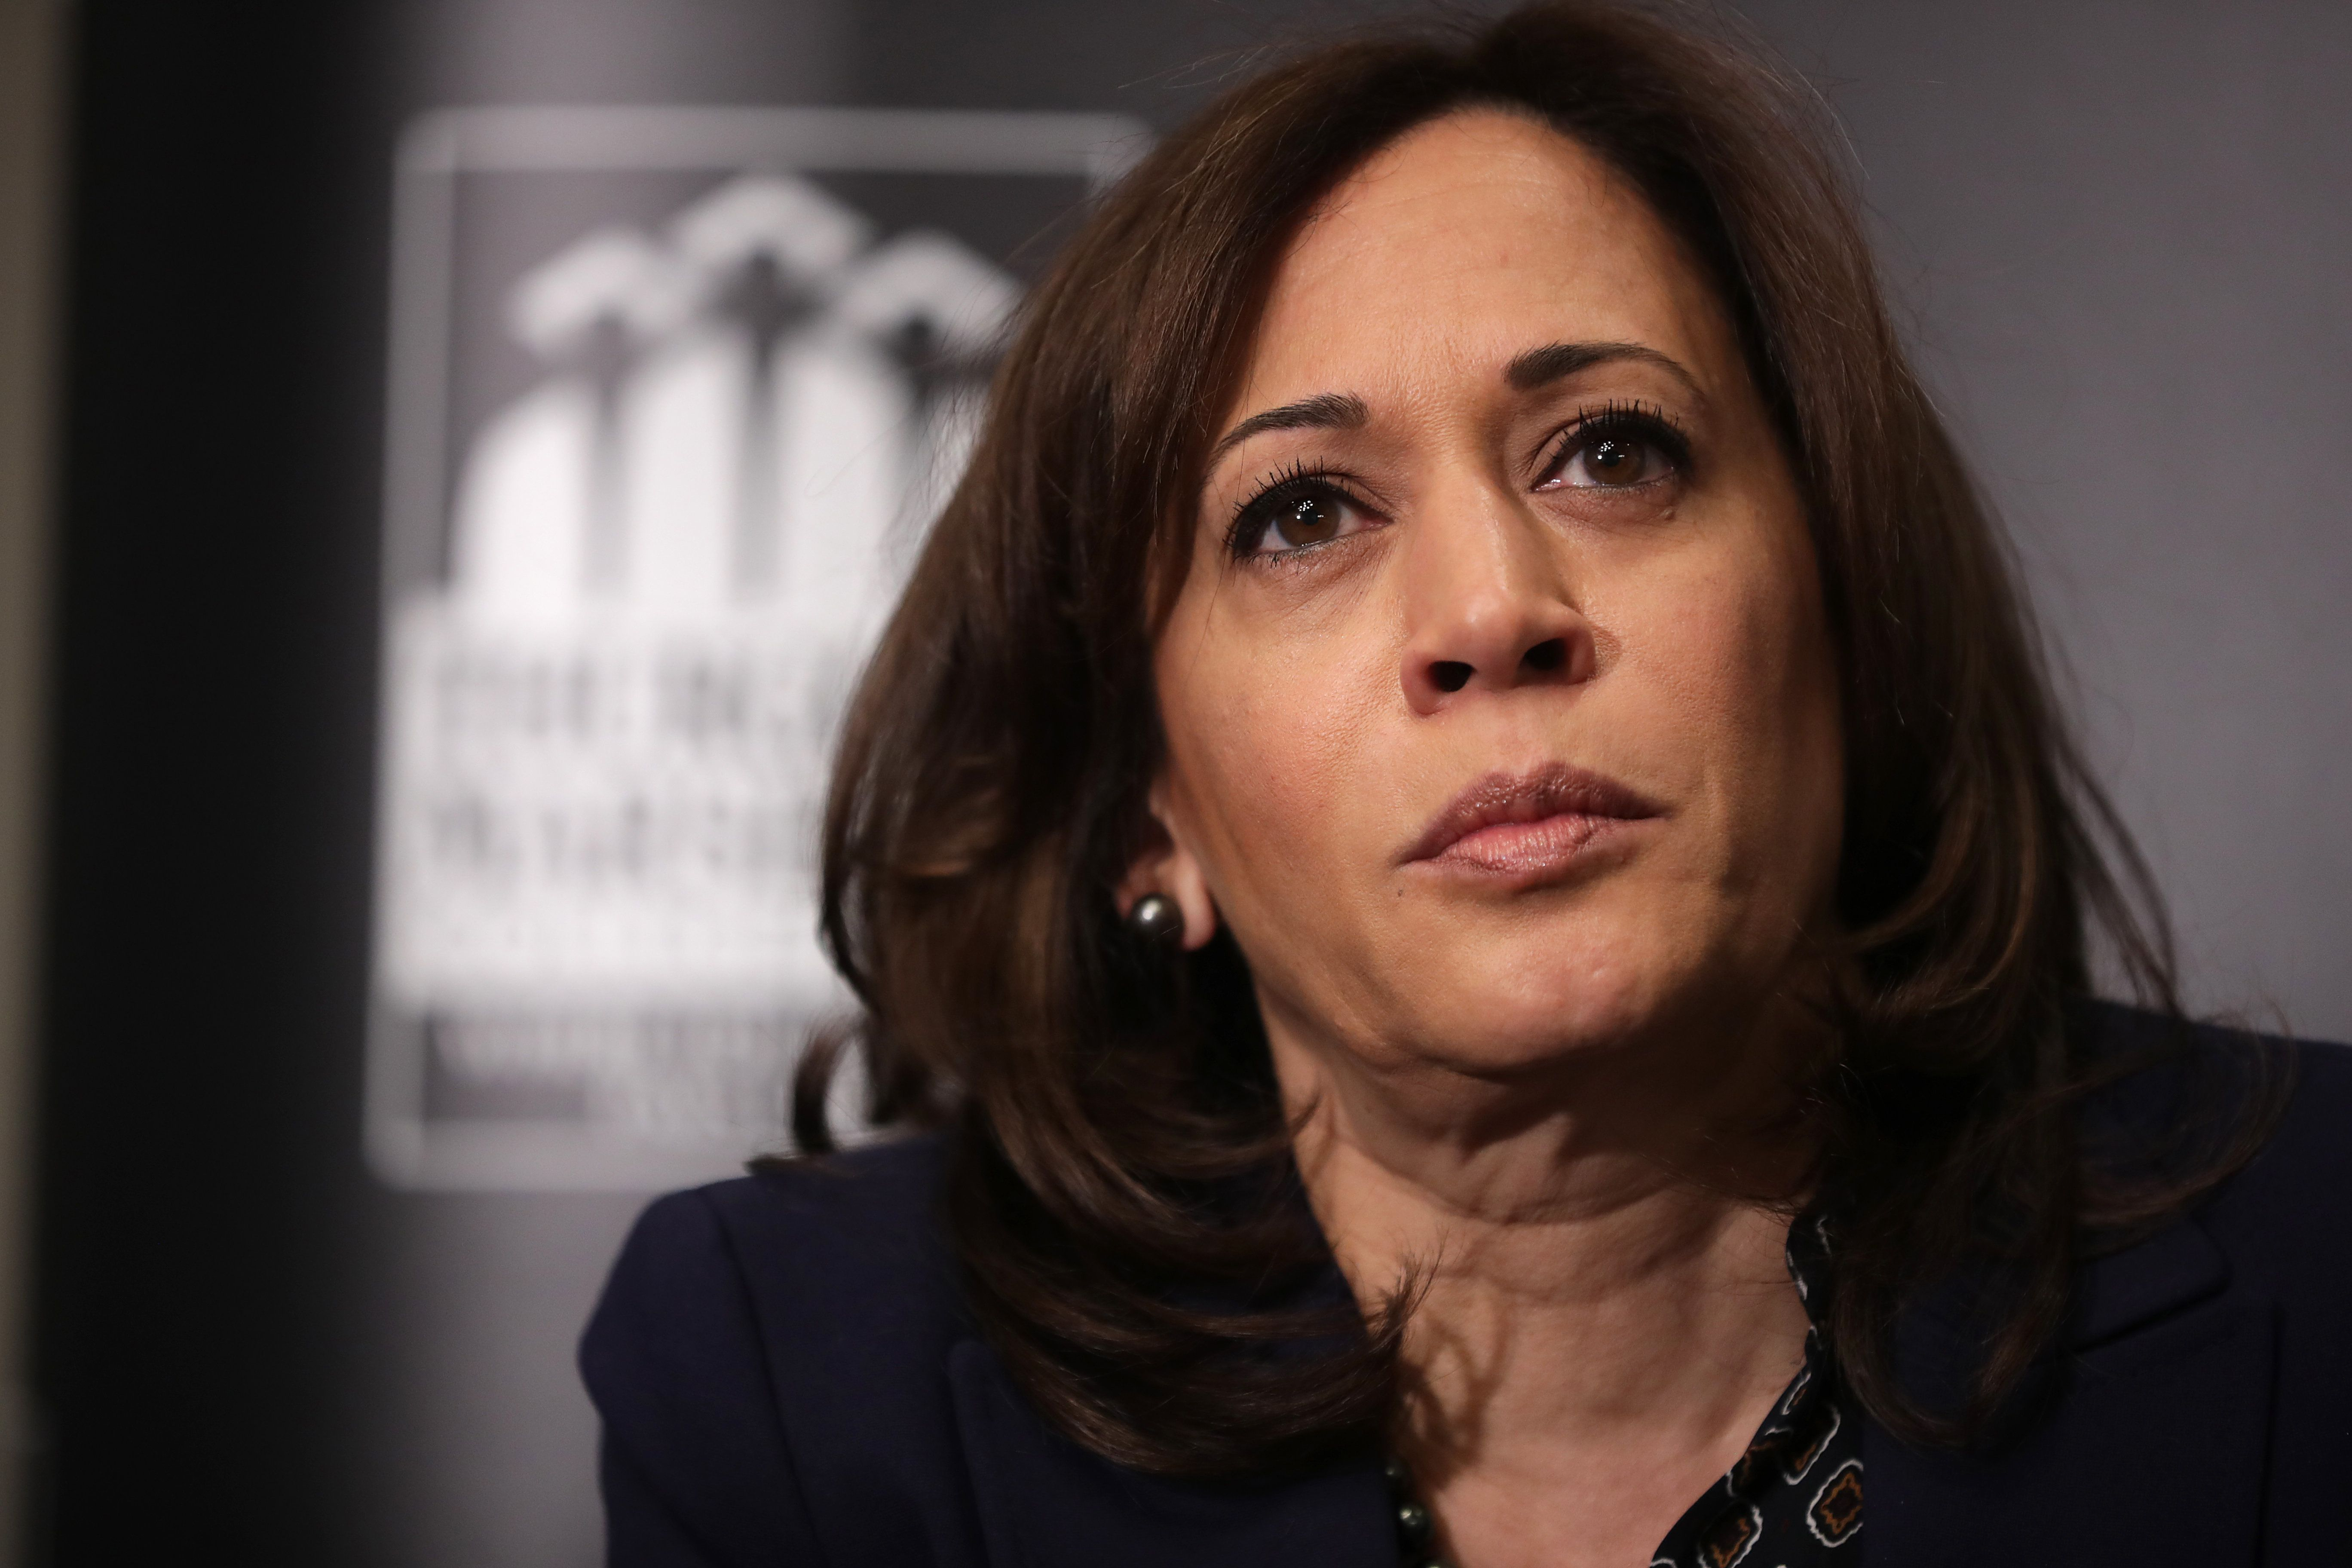 WASHINGTON, DC - FEBRUARY 07: Democratic presidential candidate Sen. Kamala Harris (D-CA) participates in a interview and question-and-answer session with leaders from historically black colleges and universities during a Thurgood Marshall College Fund event at the JW Marriott February 07, 2019 in Washington, DC. Harris officially announced her candidacy for president of the United States on January 21. (Photo by Chip Somodevilla/Getty Images)